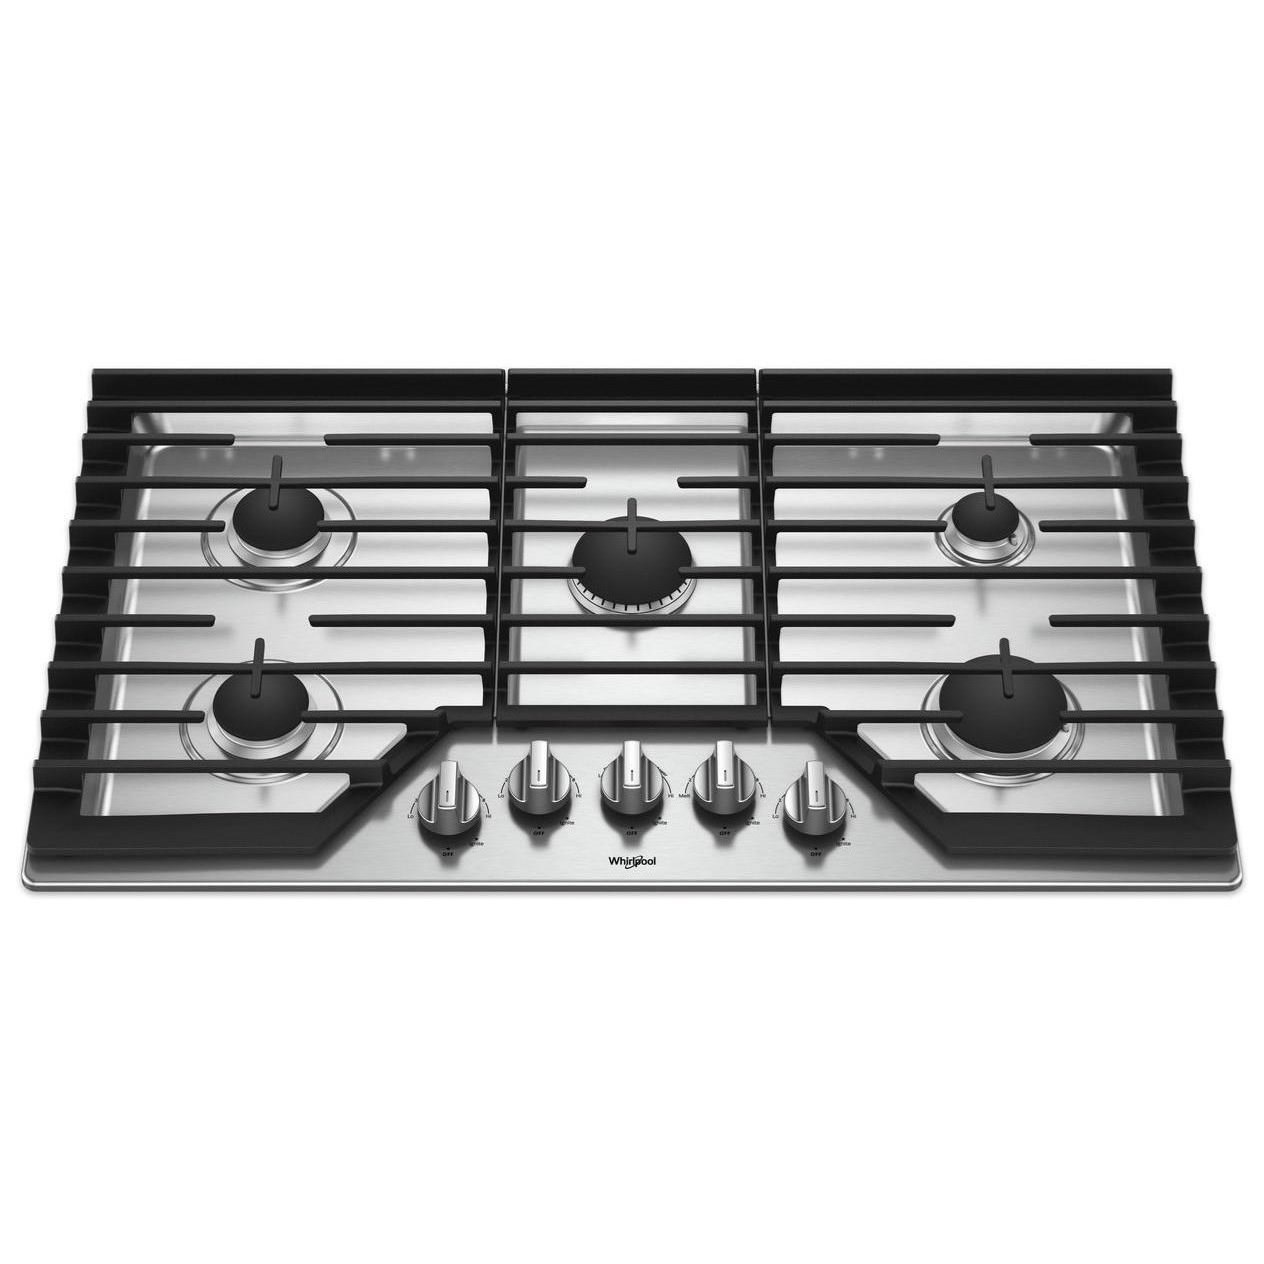 gas cooktop with griddle. Whirlpool Gas Cooktops 36-inch Cooktop With Griddle Gas Cooktop Griddle